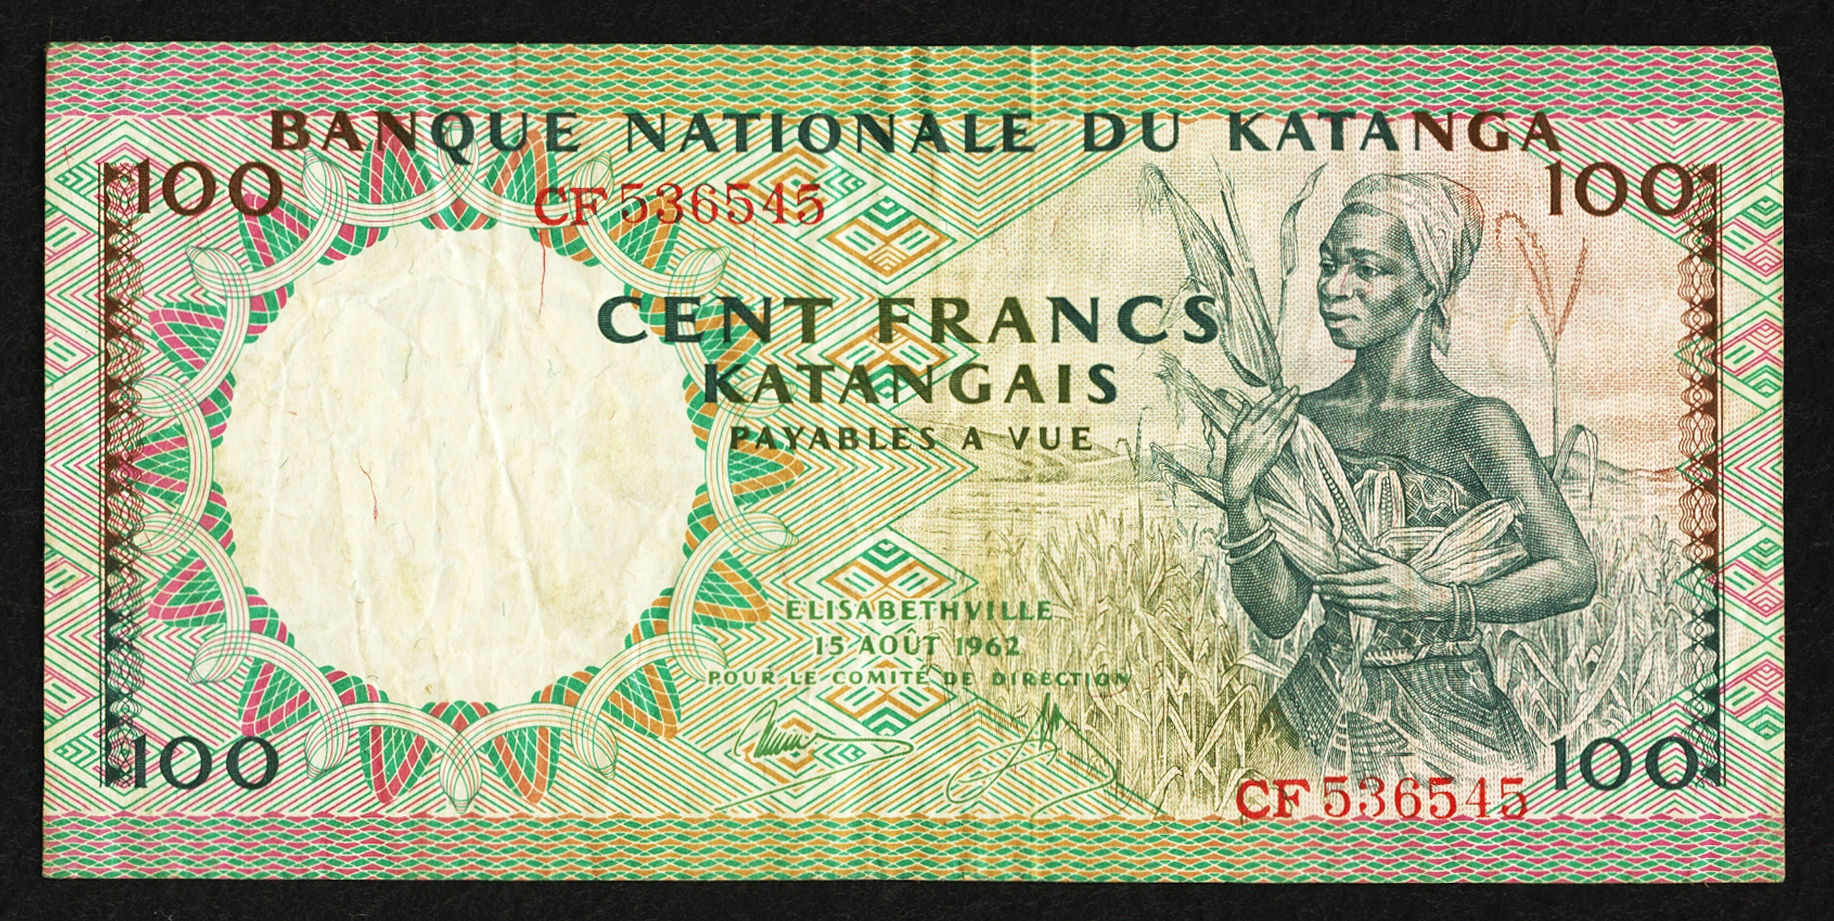 This National Bank of Katanga 100-franc note, dated Aug. 15, 1962, is a tangible piece of history from this short-lived nation.